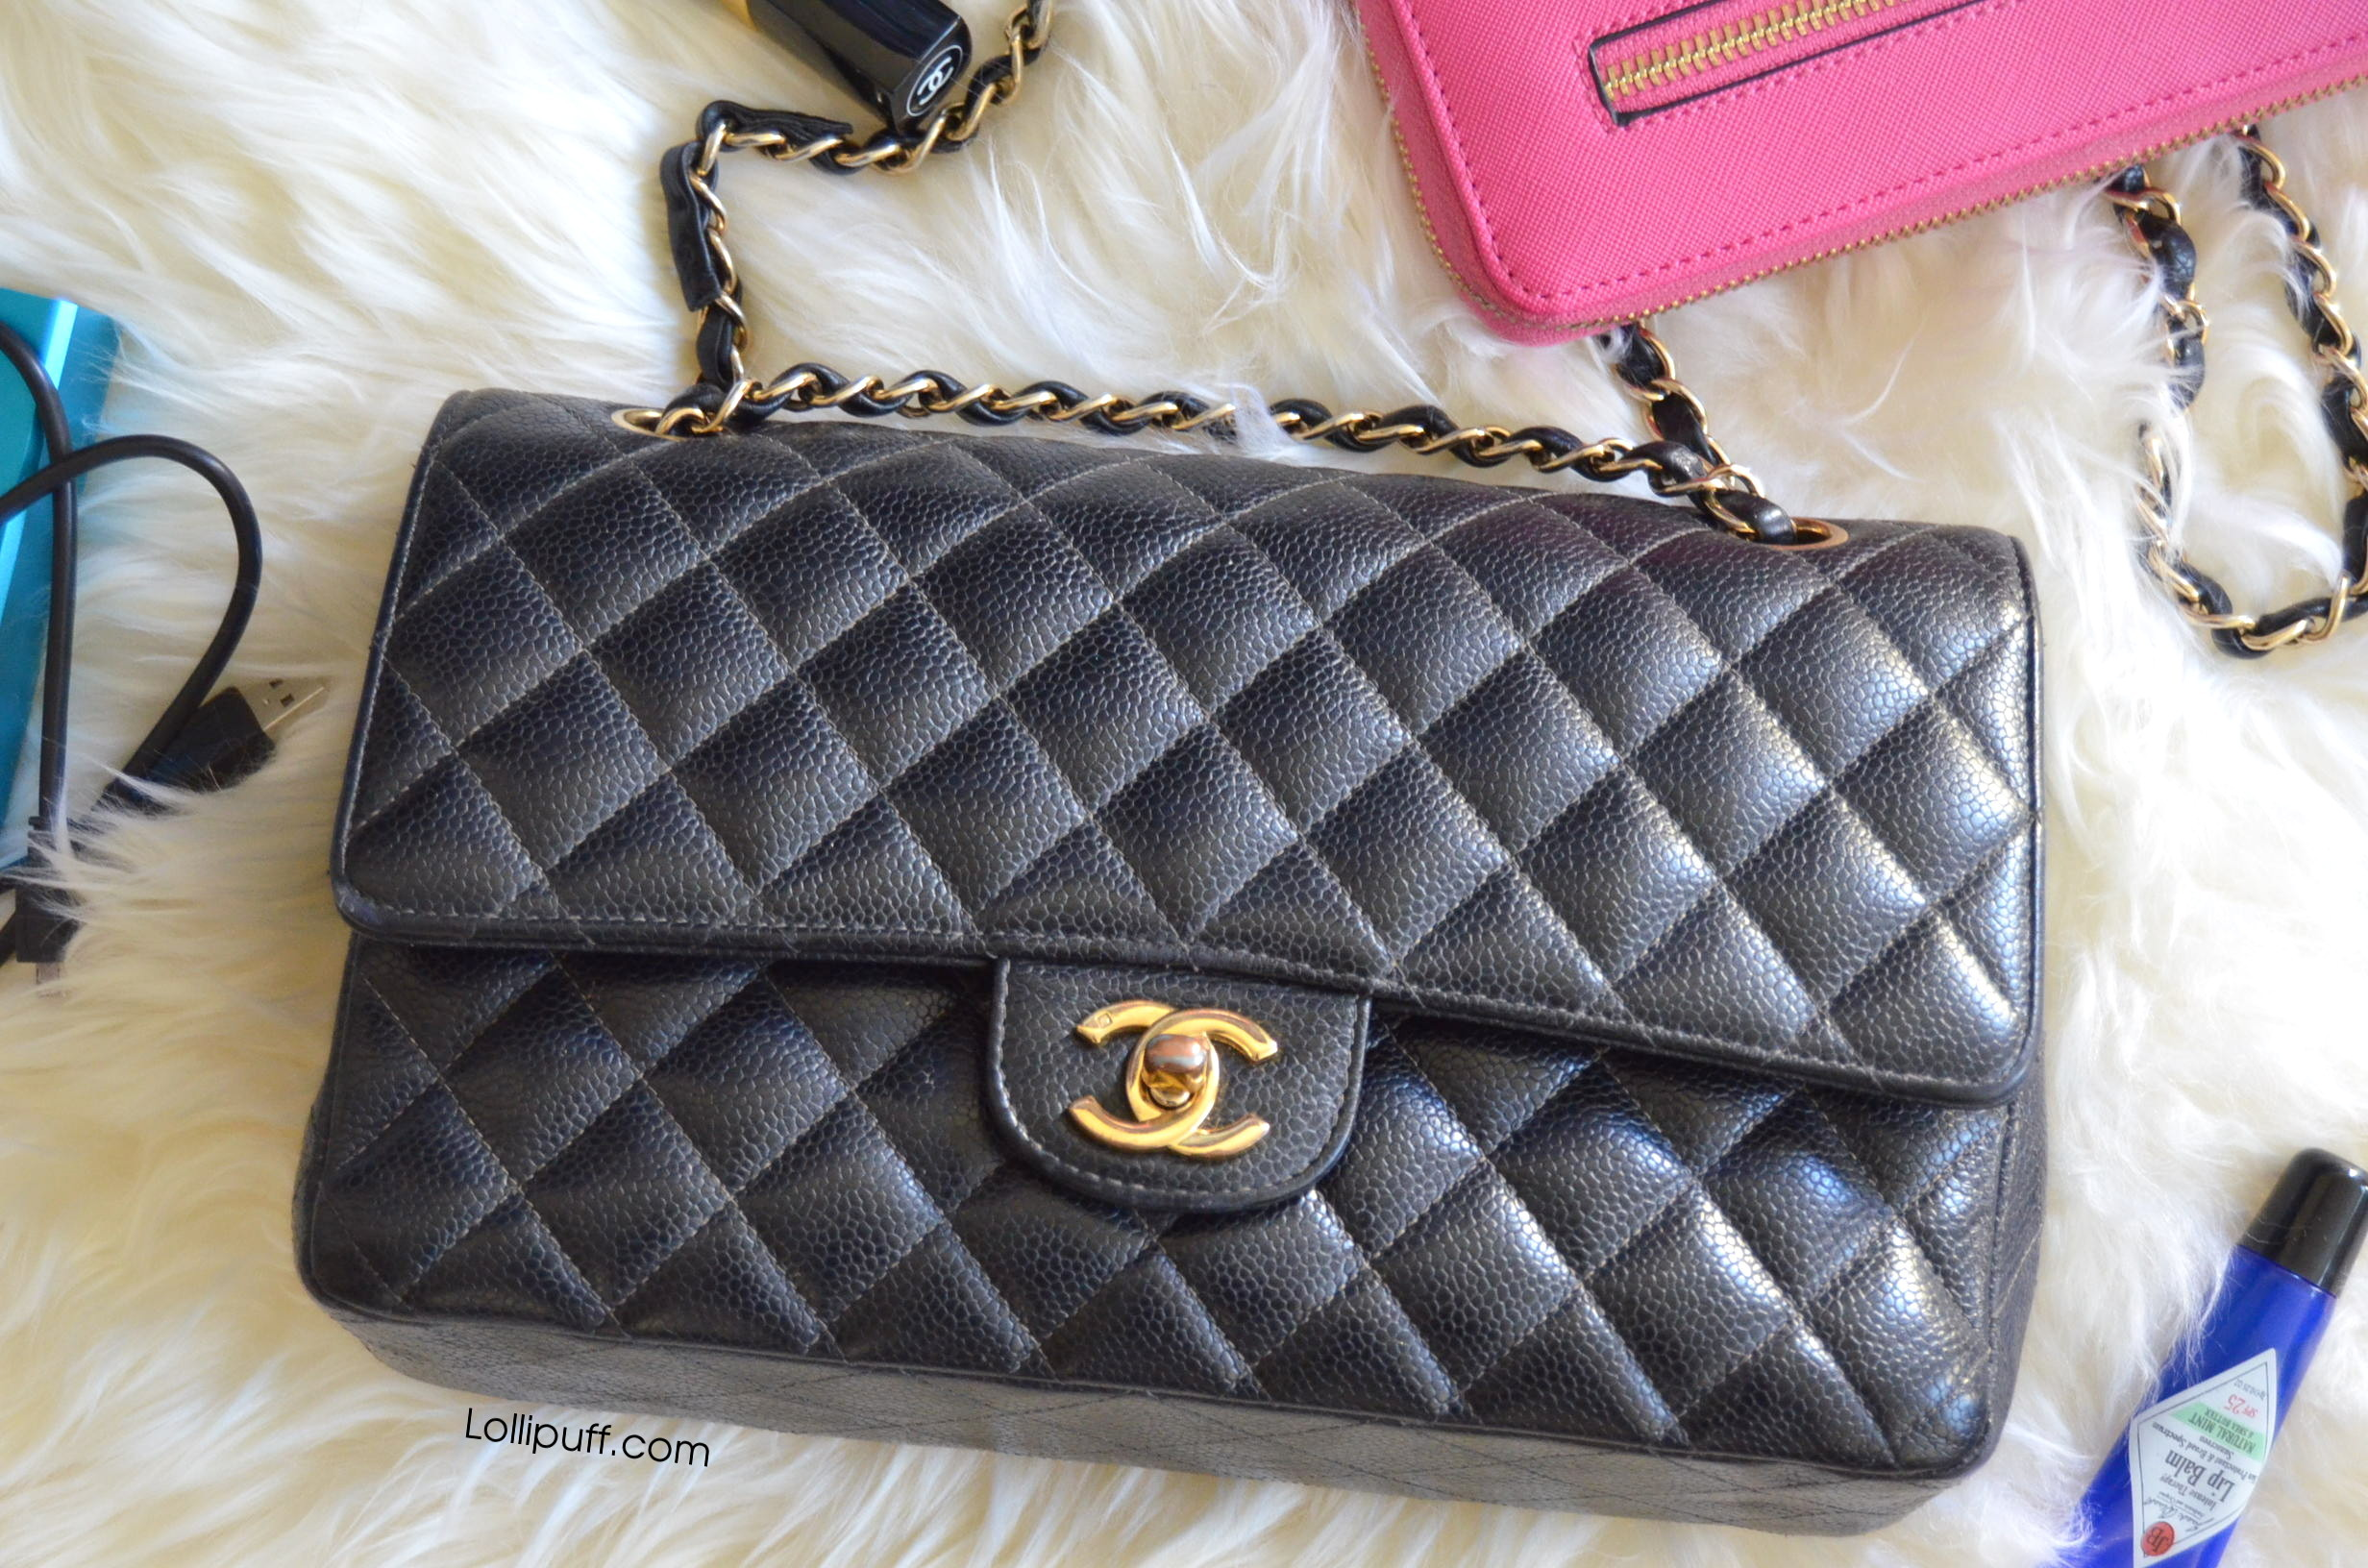 2fef7a541924 Inside a Medium Classic Chanel Double Flap Bag | Lollipuff